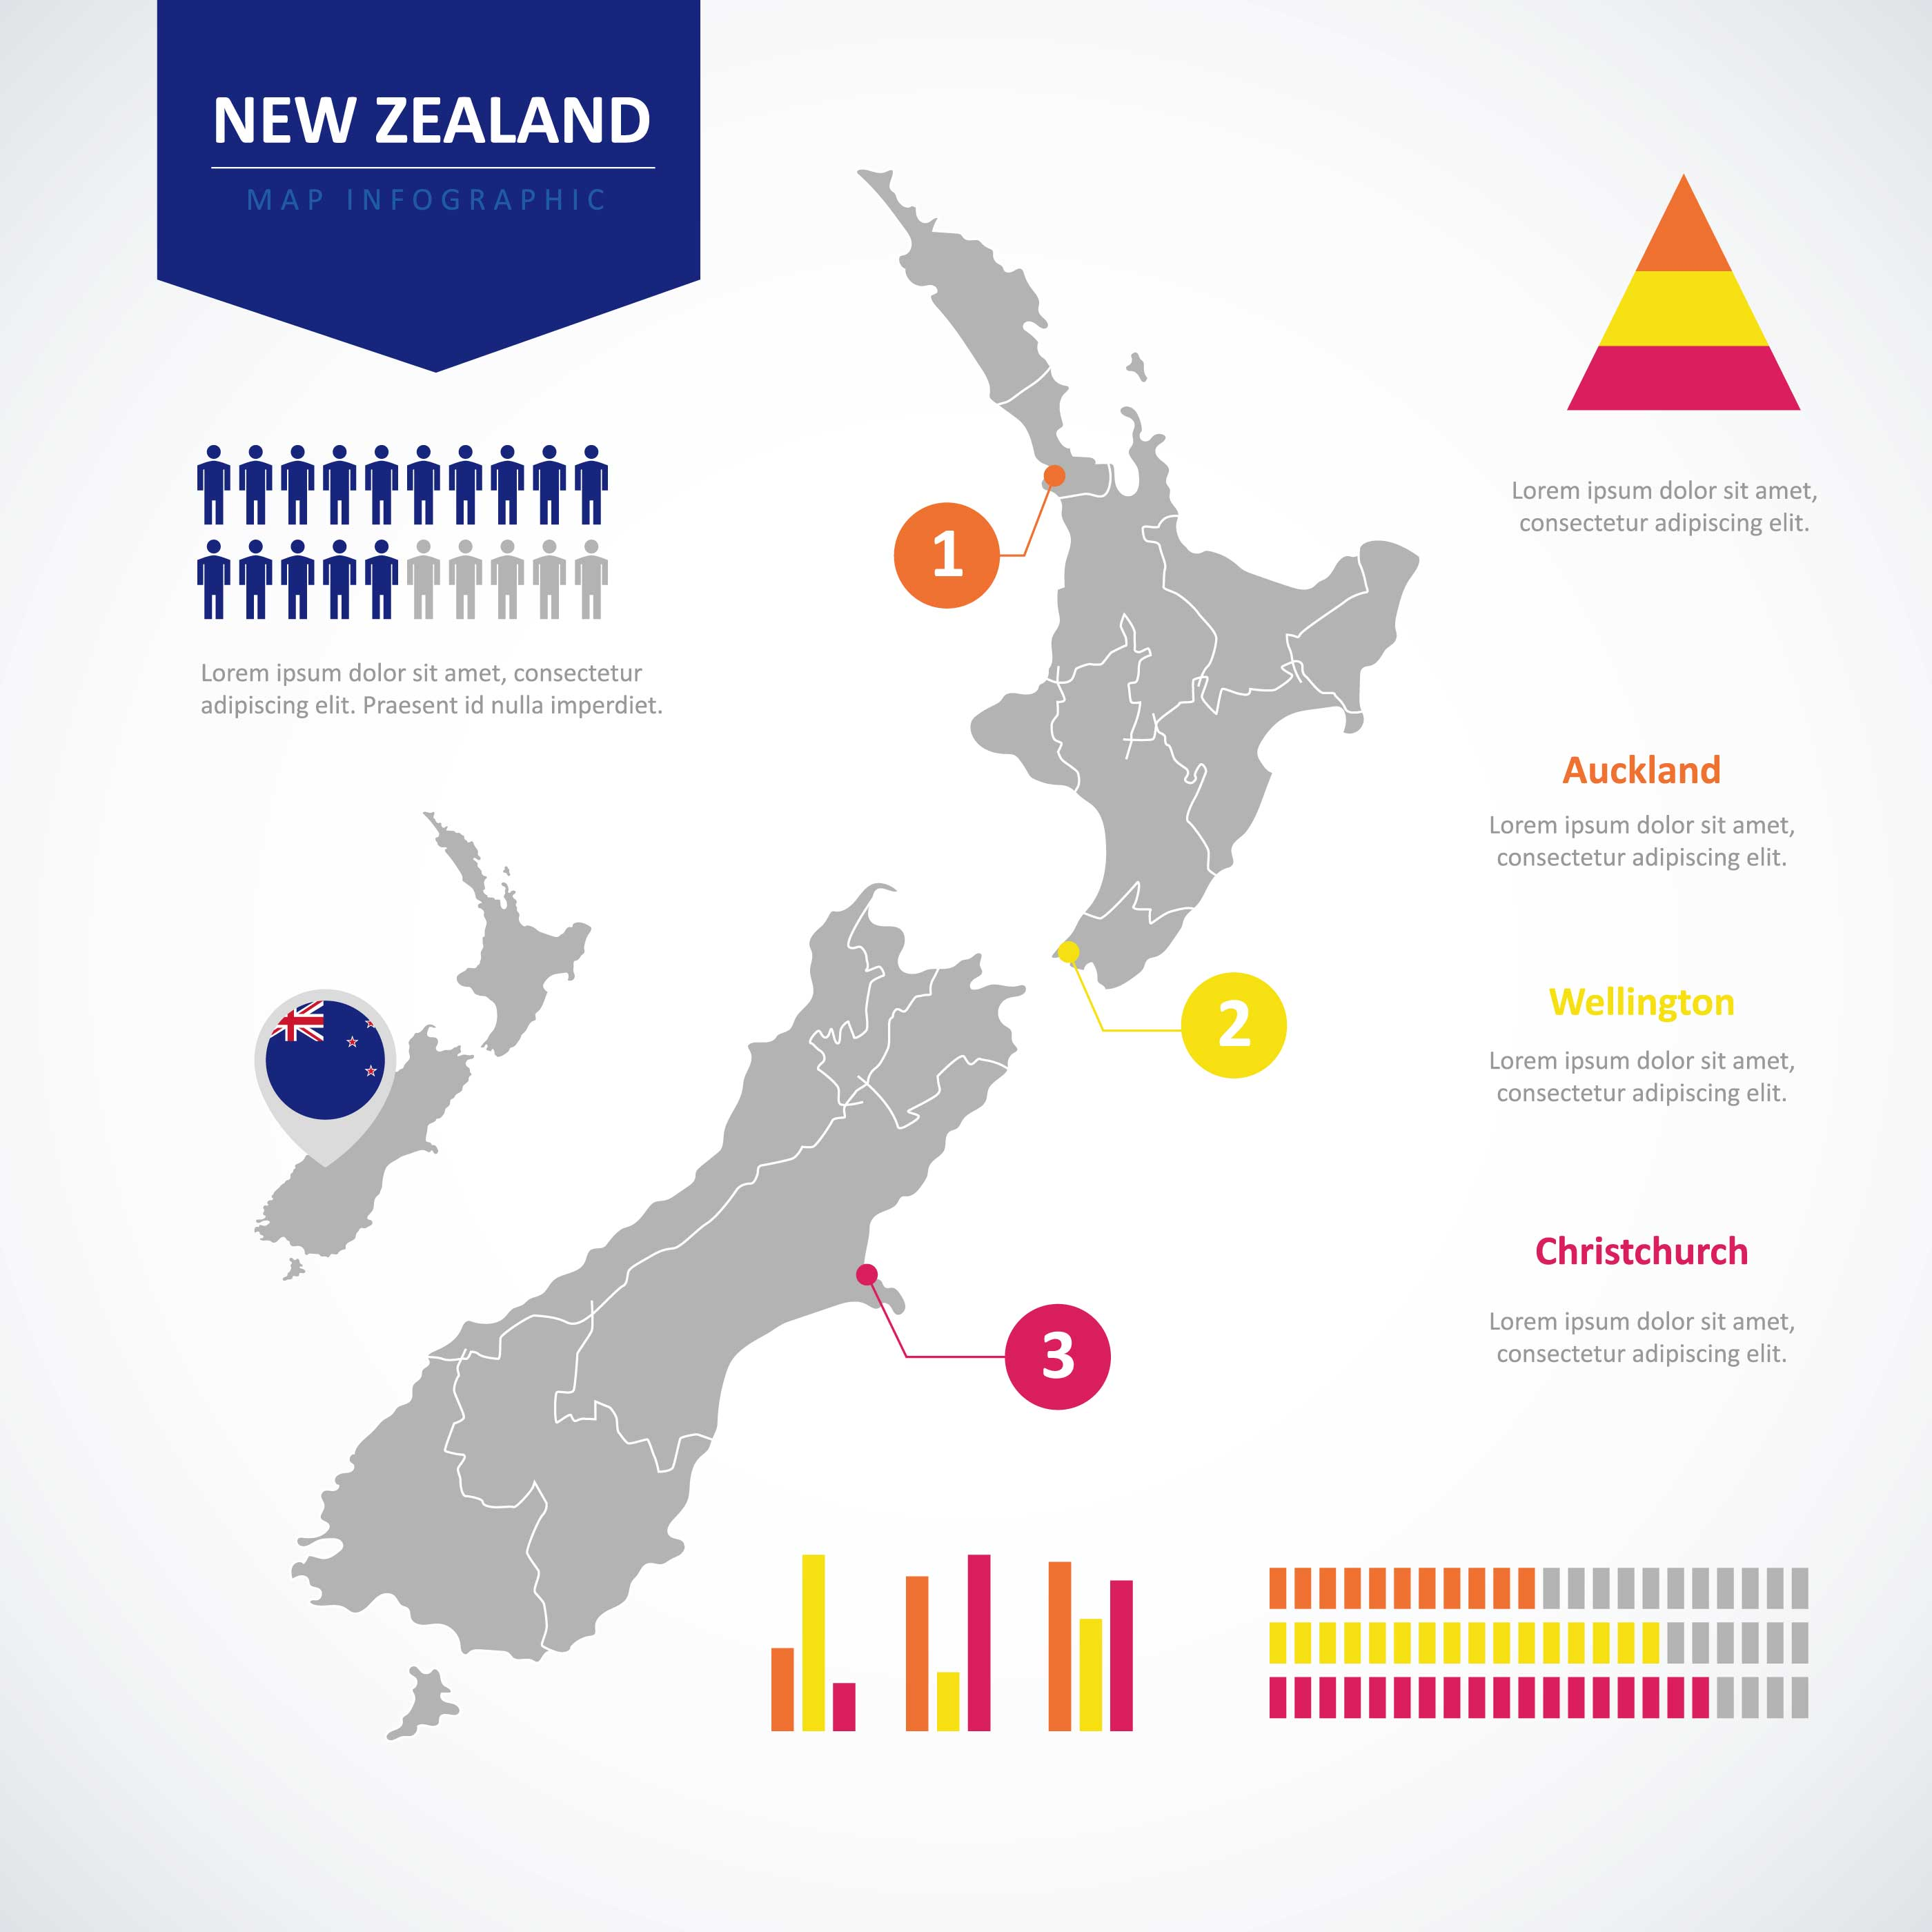 Line Drawing New Zealand Map : New zealand map infographic download free vector art